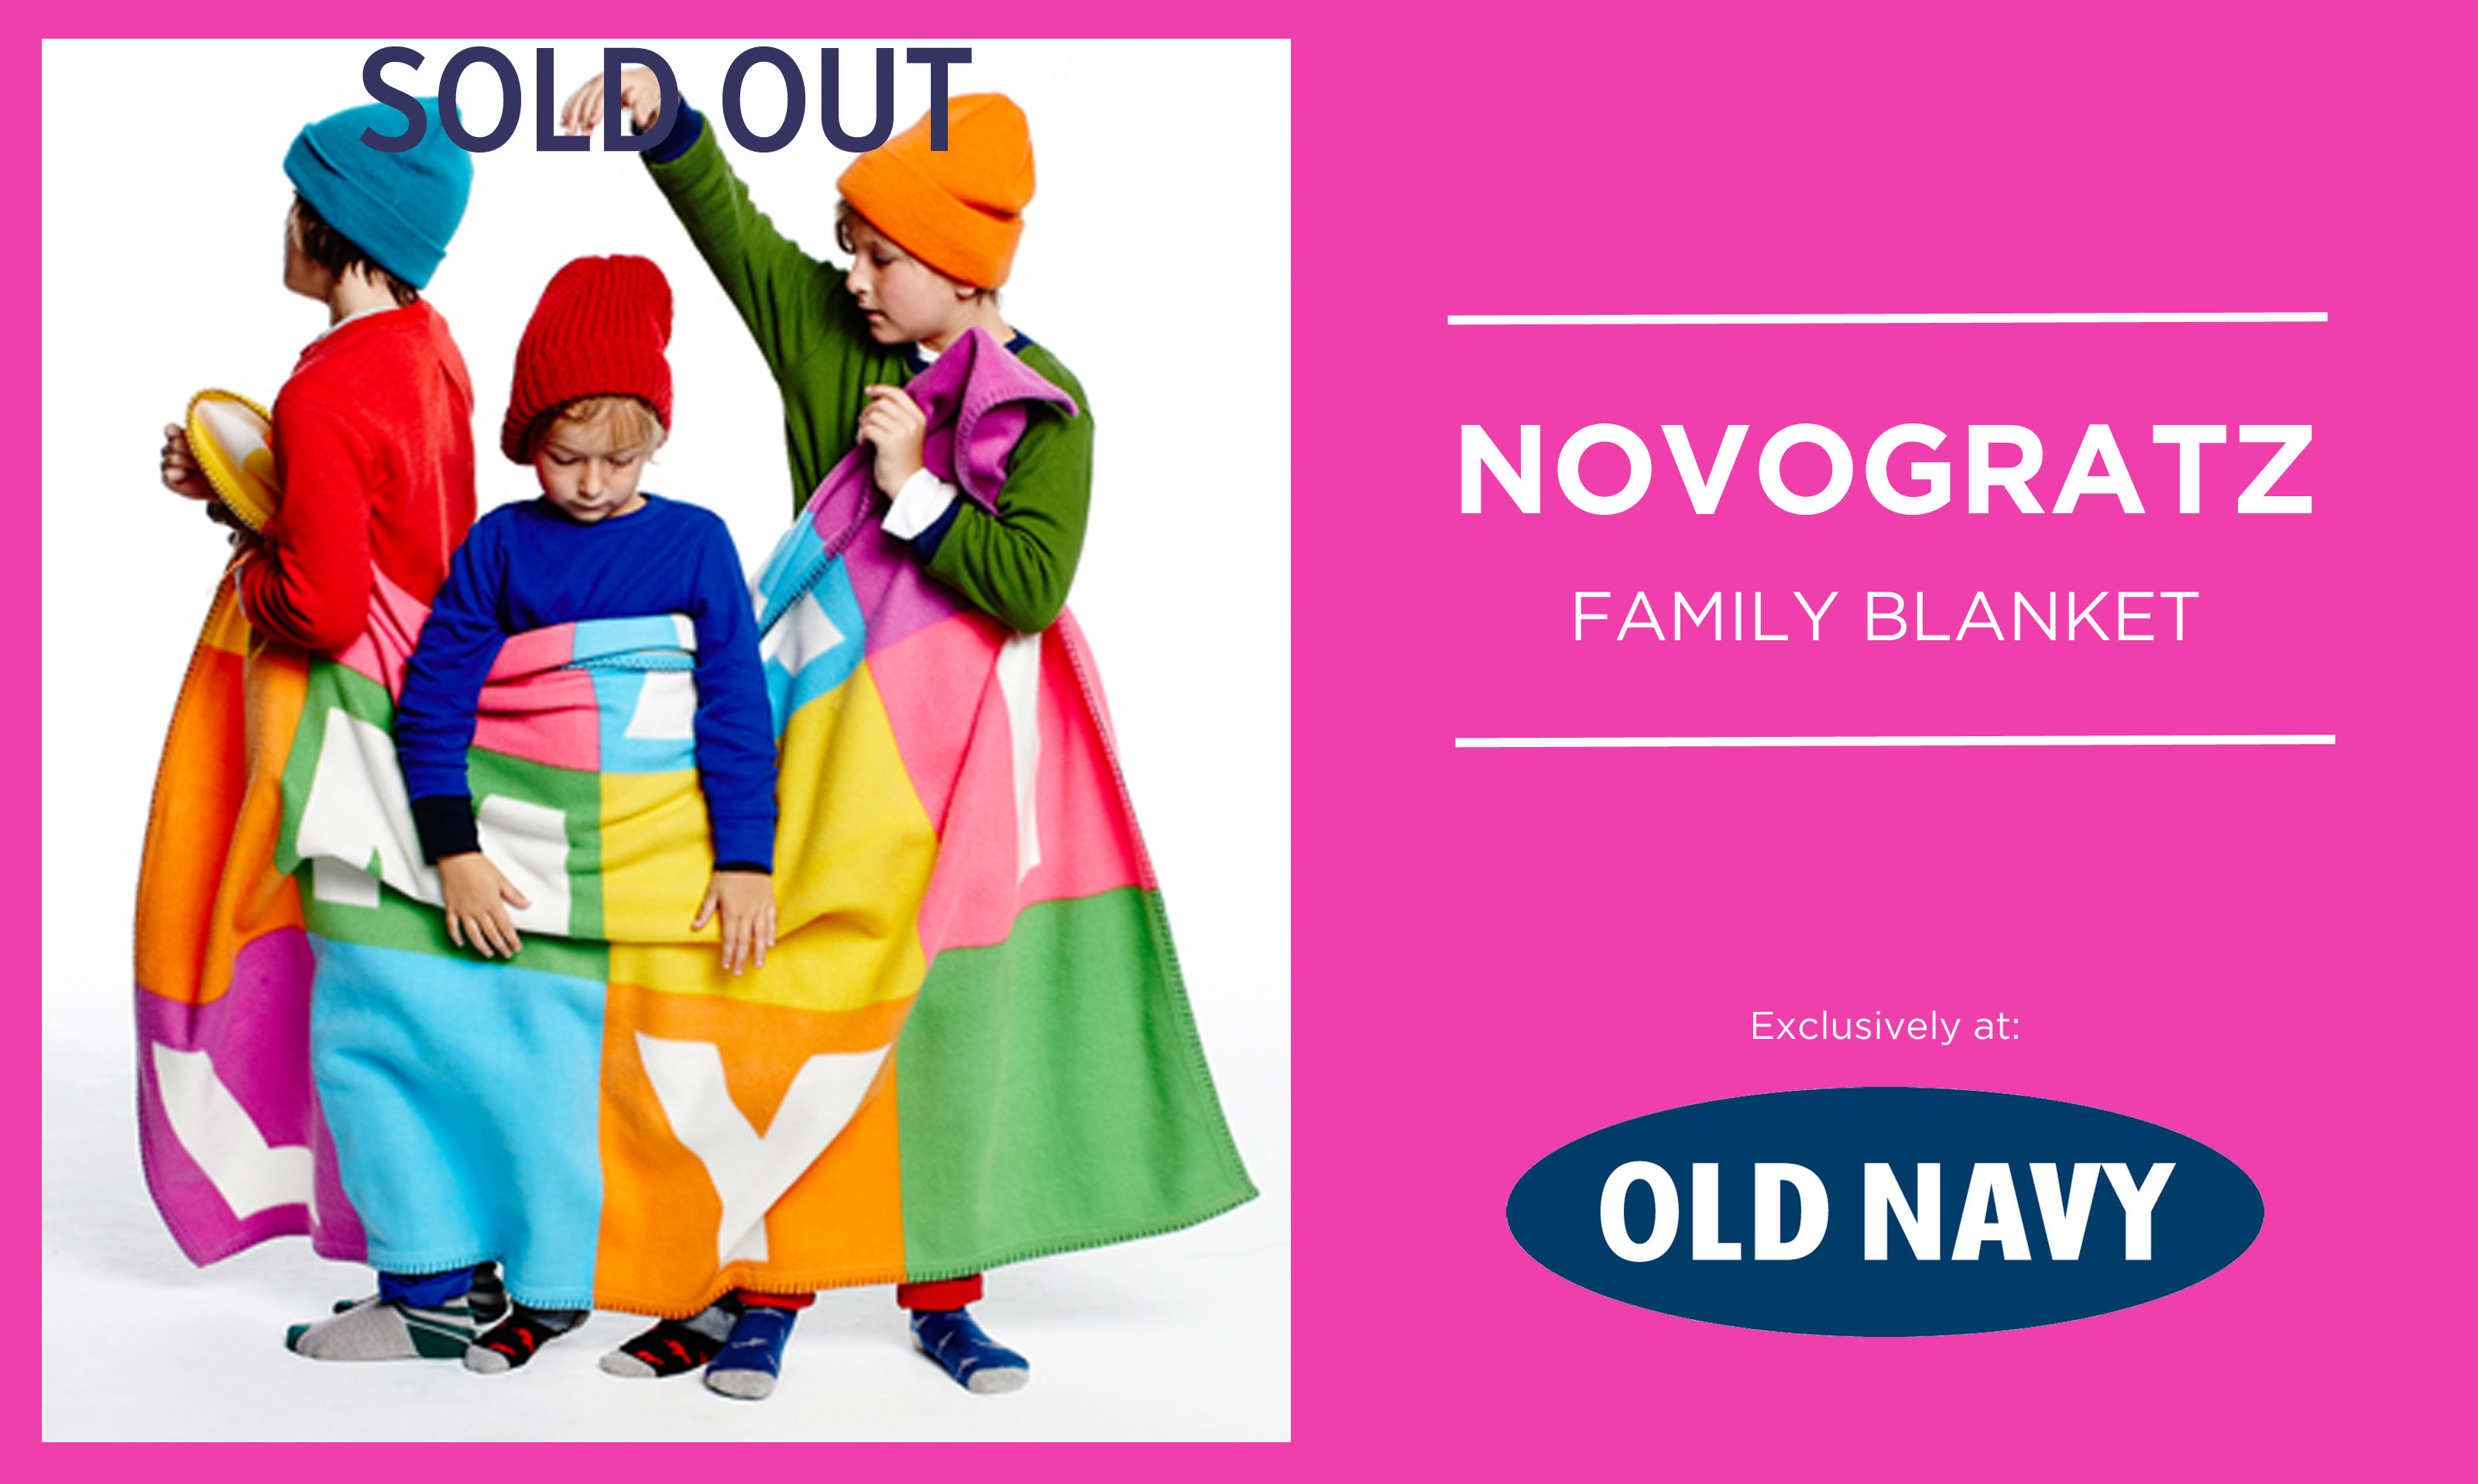 Novogratz for Old Navy